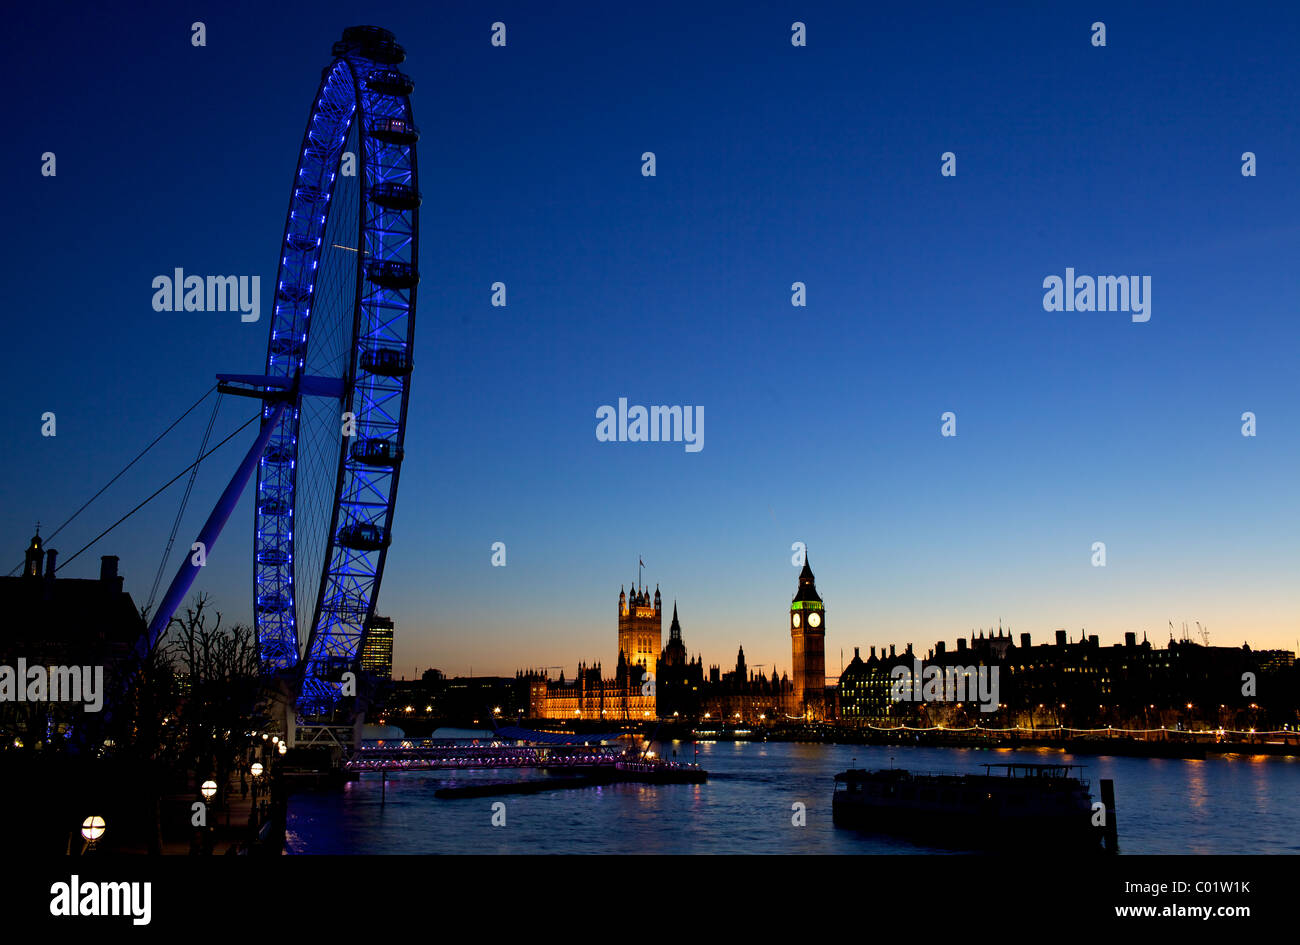 London eye and the houses of parliament at twilight - Stock Image